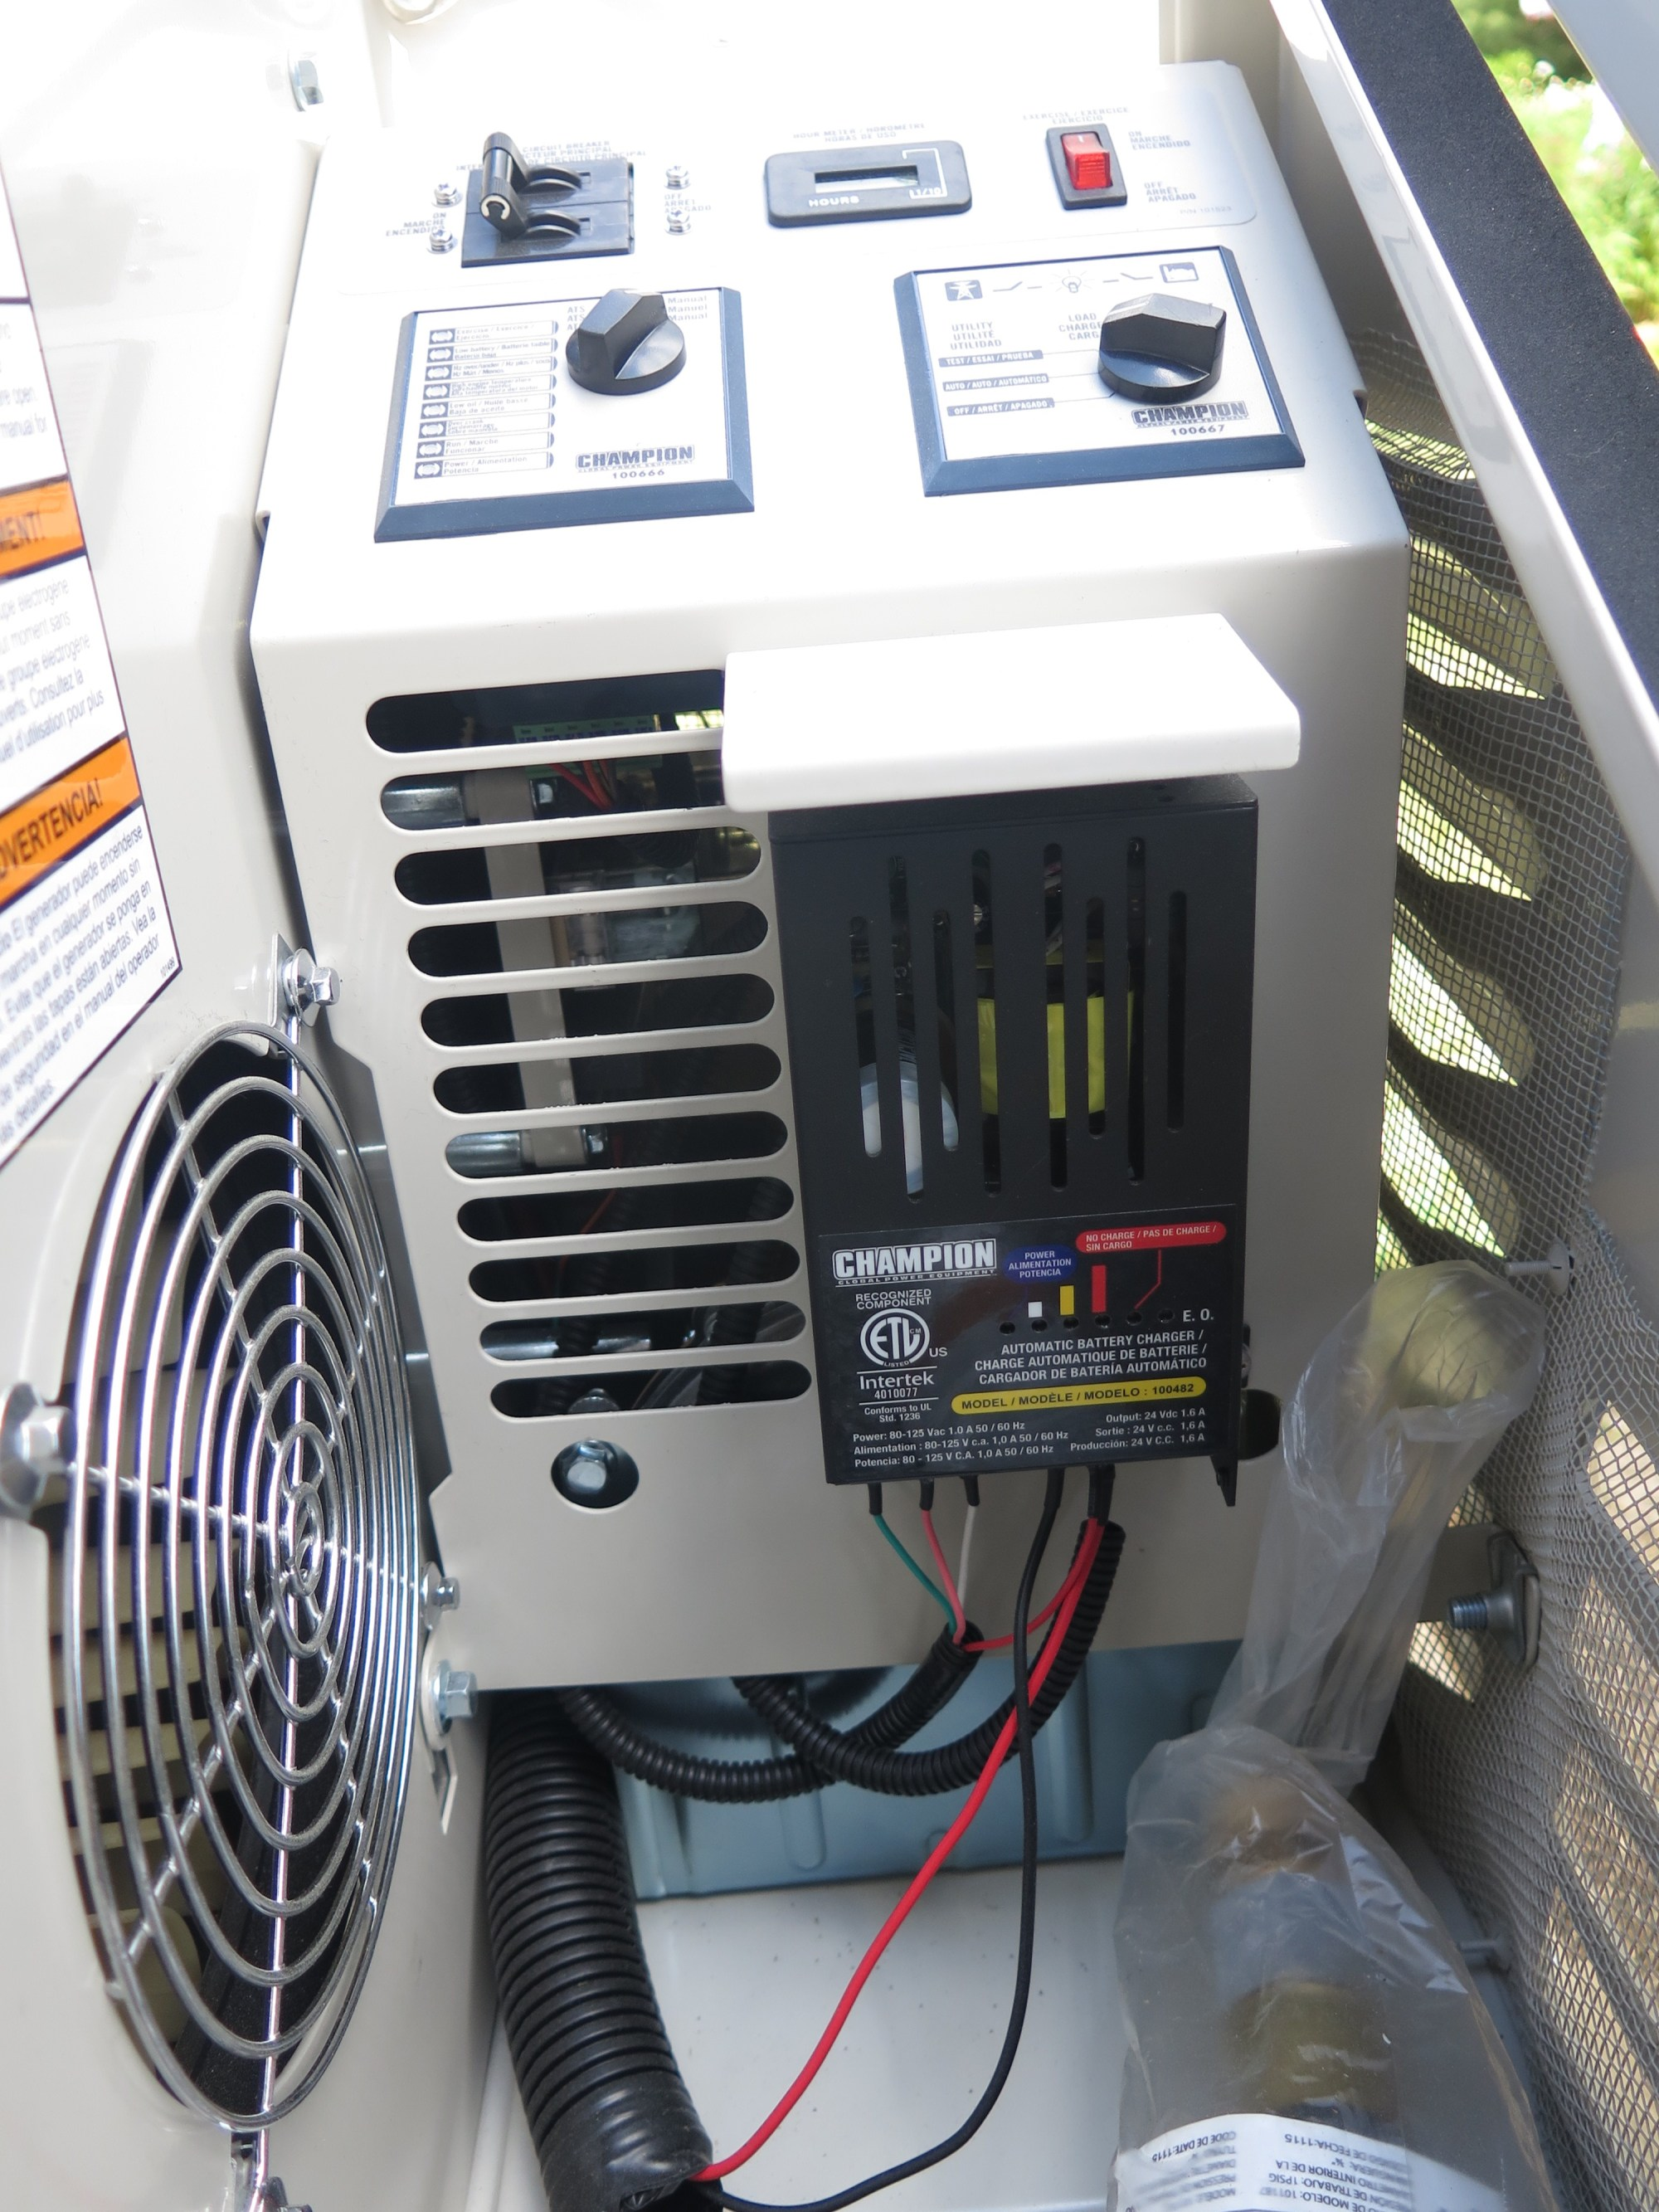 hight resolution of quality of electricity from home standby generators